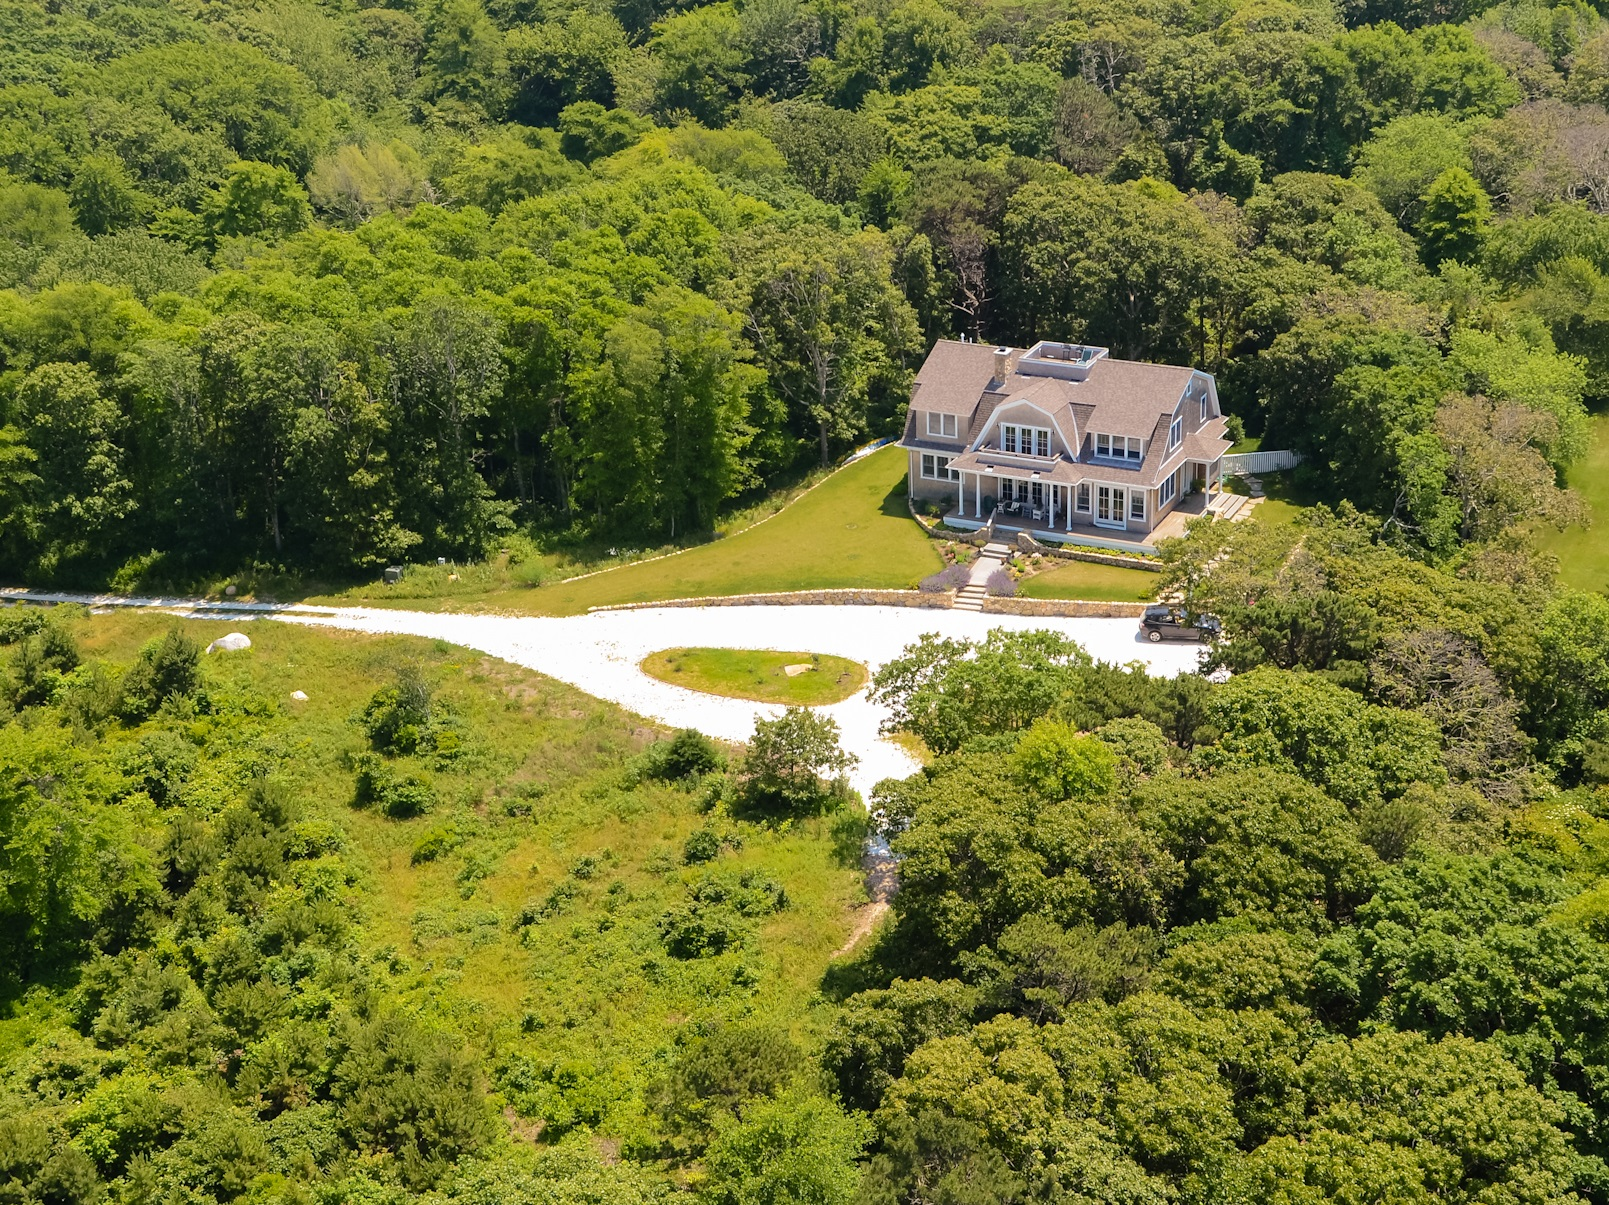 Maison unifamiliale pour l Vente à 8.6 Acre Estate with Private Association Beaches 94 Norton Farm Road West Tisbury, Massachusetts 02575 États-Unis